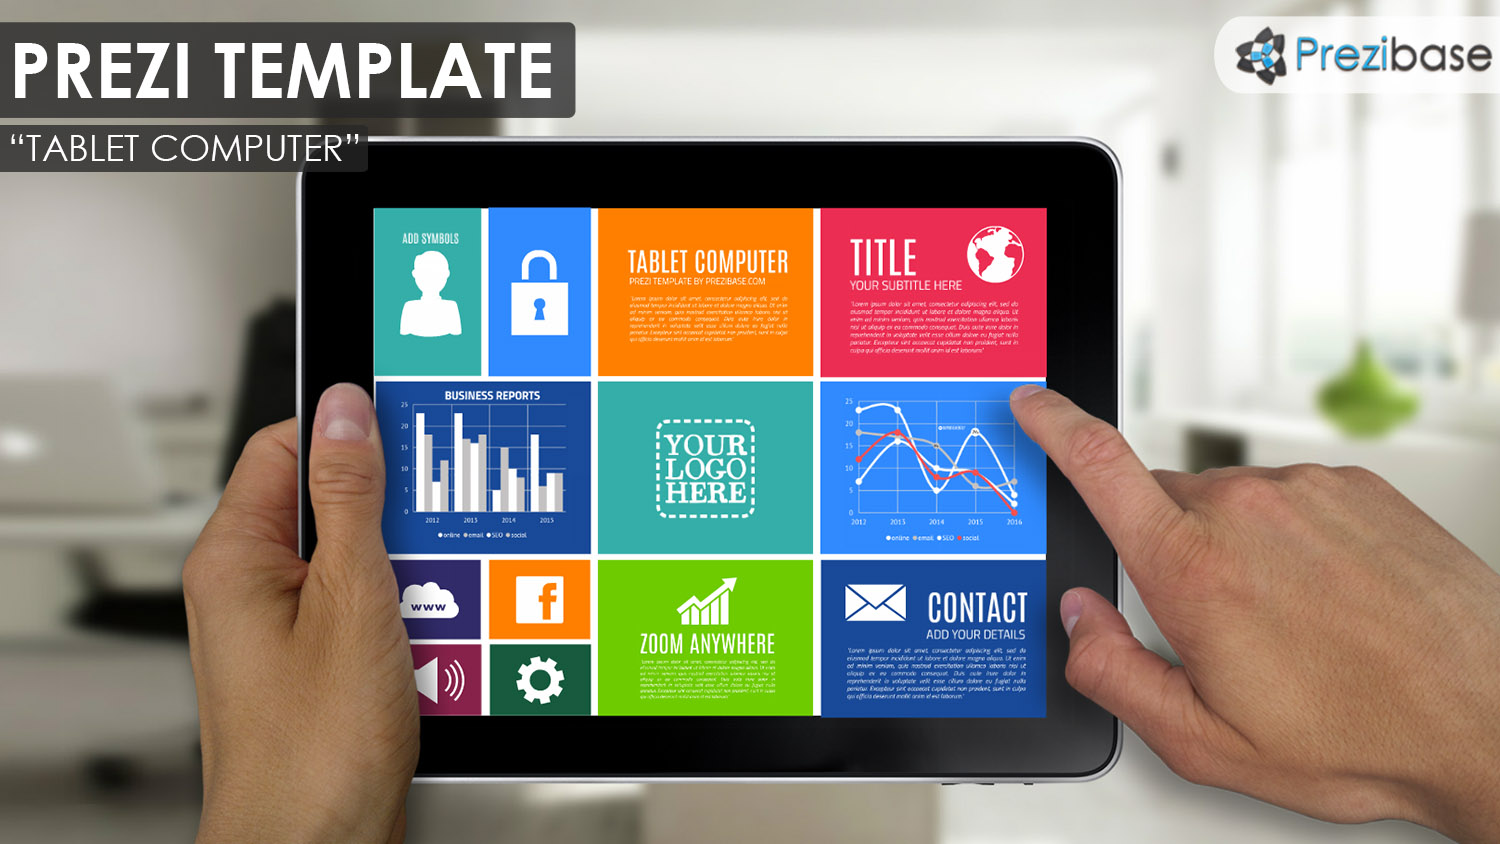 Colorful ipad tablet screen technology prezi template